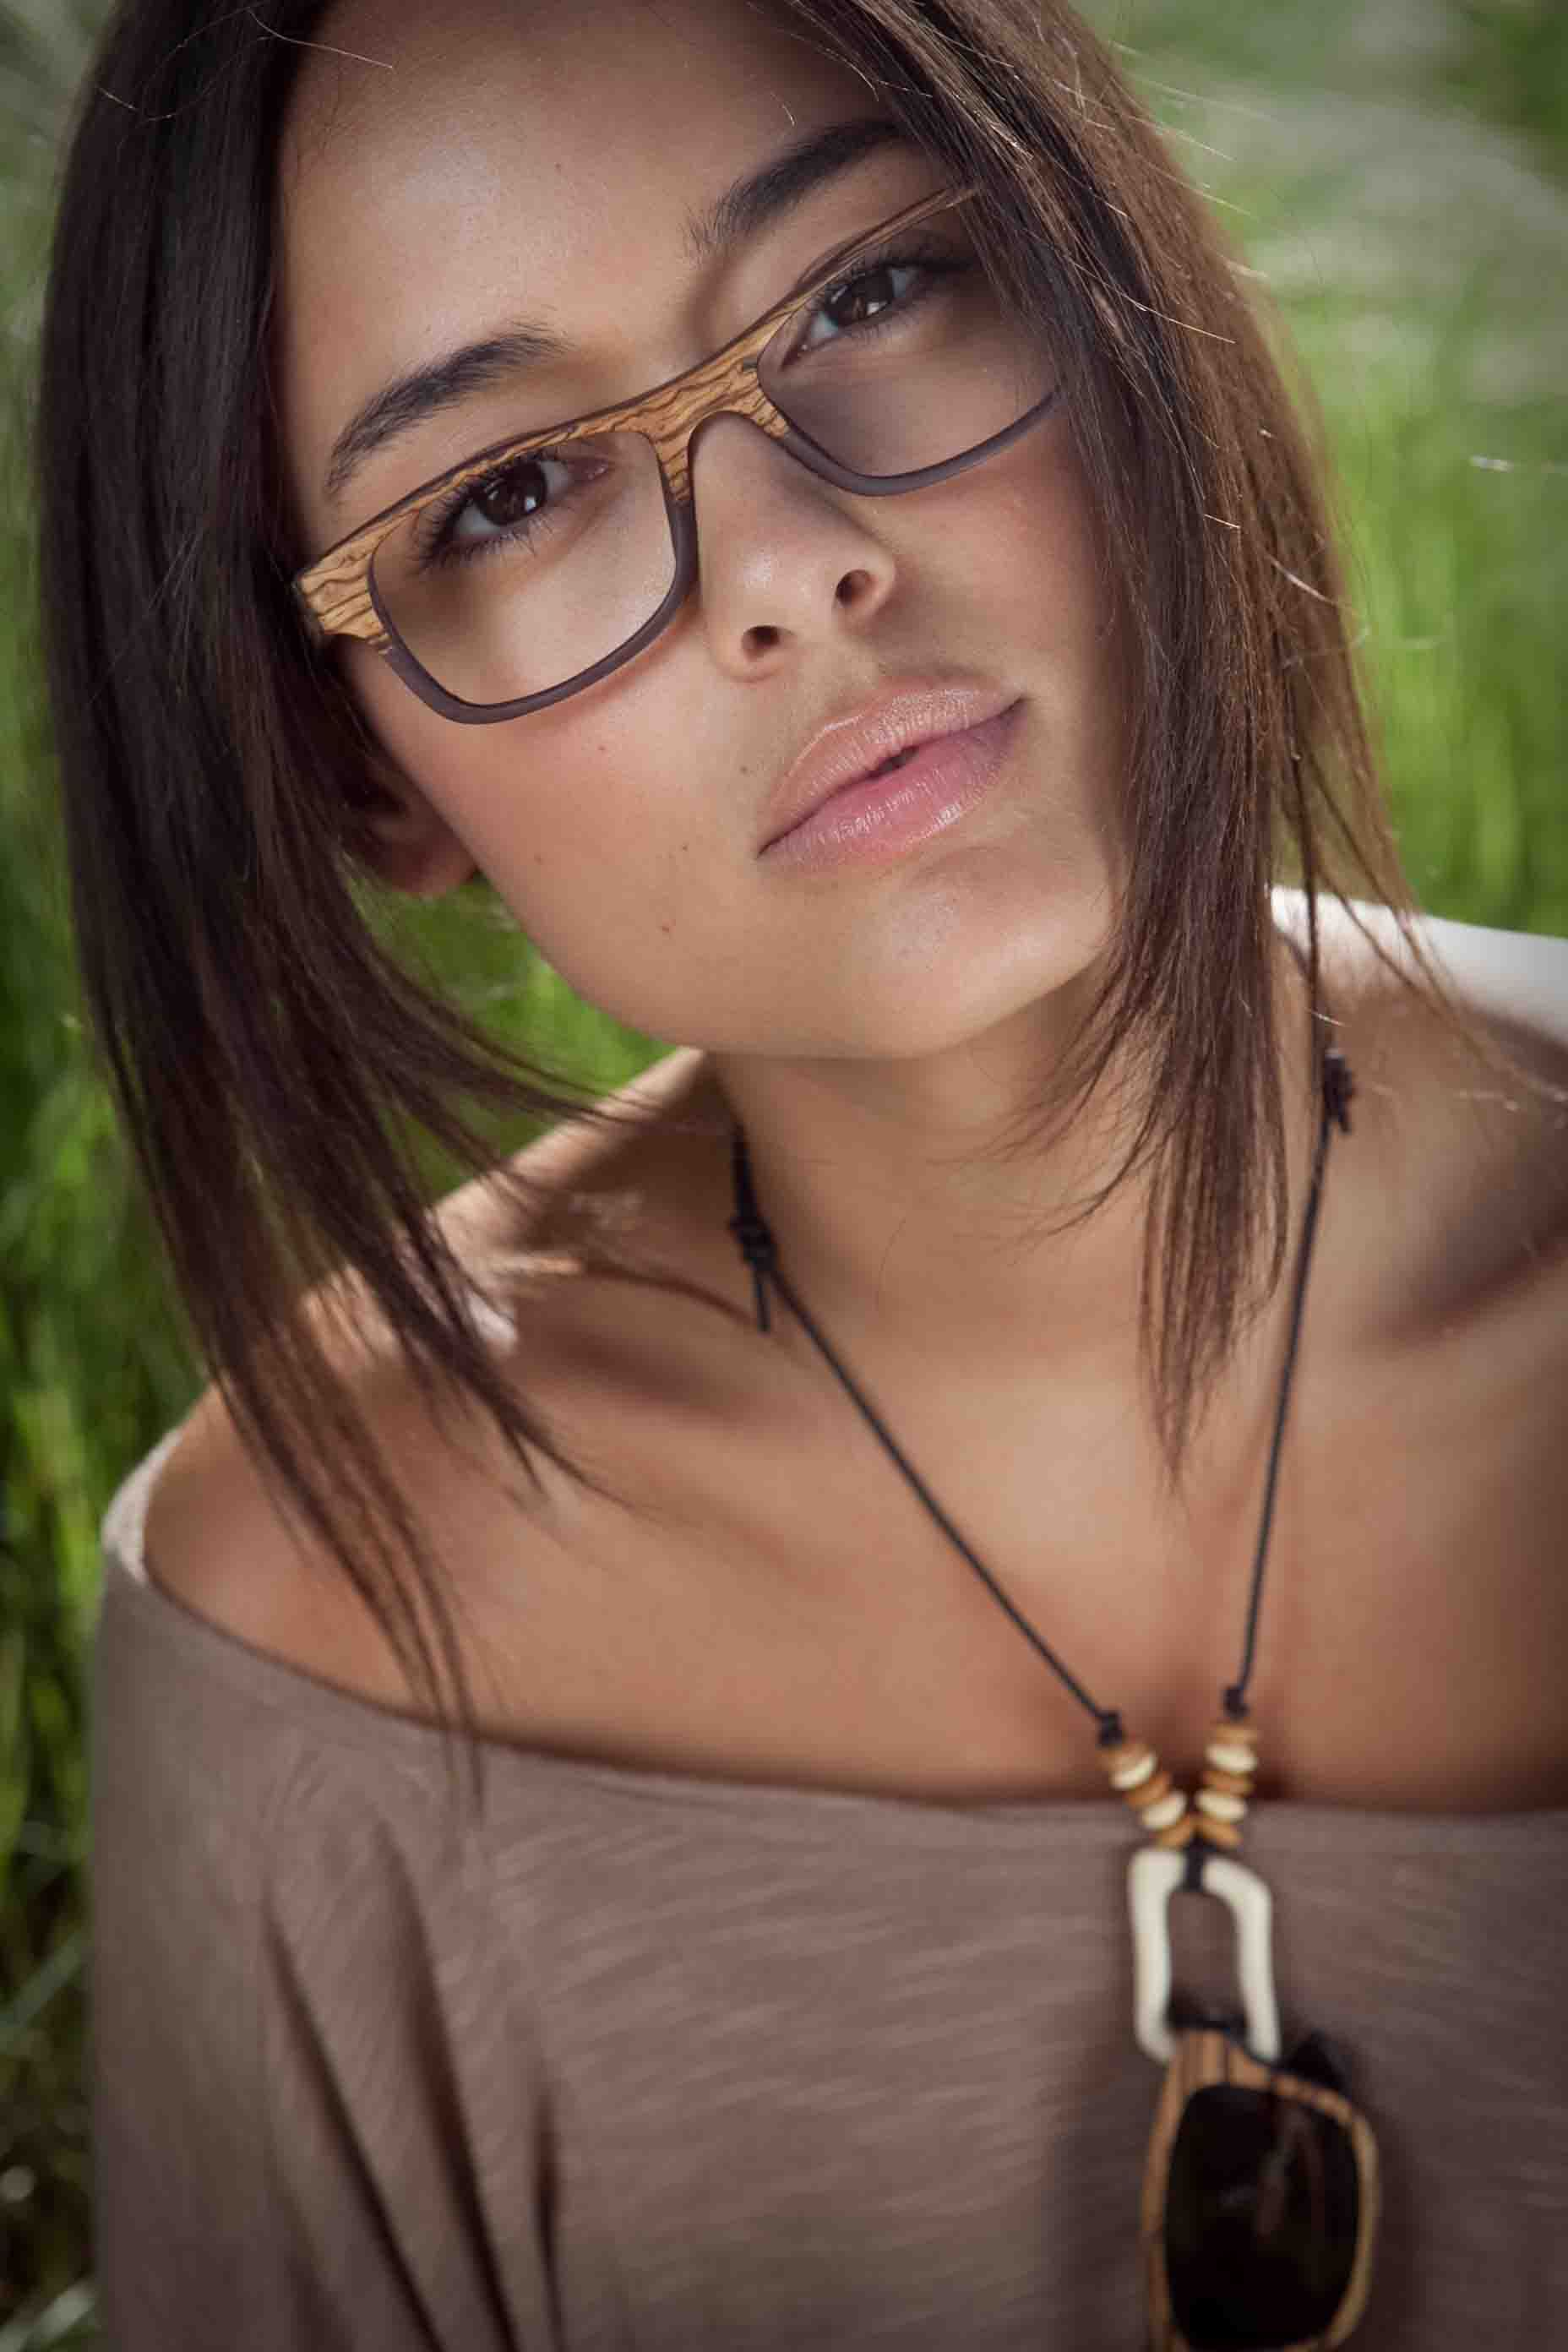 c9cd8d2664 Beautiful Chelsea Gilligan wearing wooden glasses by Sire s Crown. Hiroki  frame in Olive Ash Burl wood